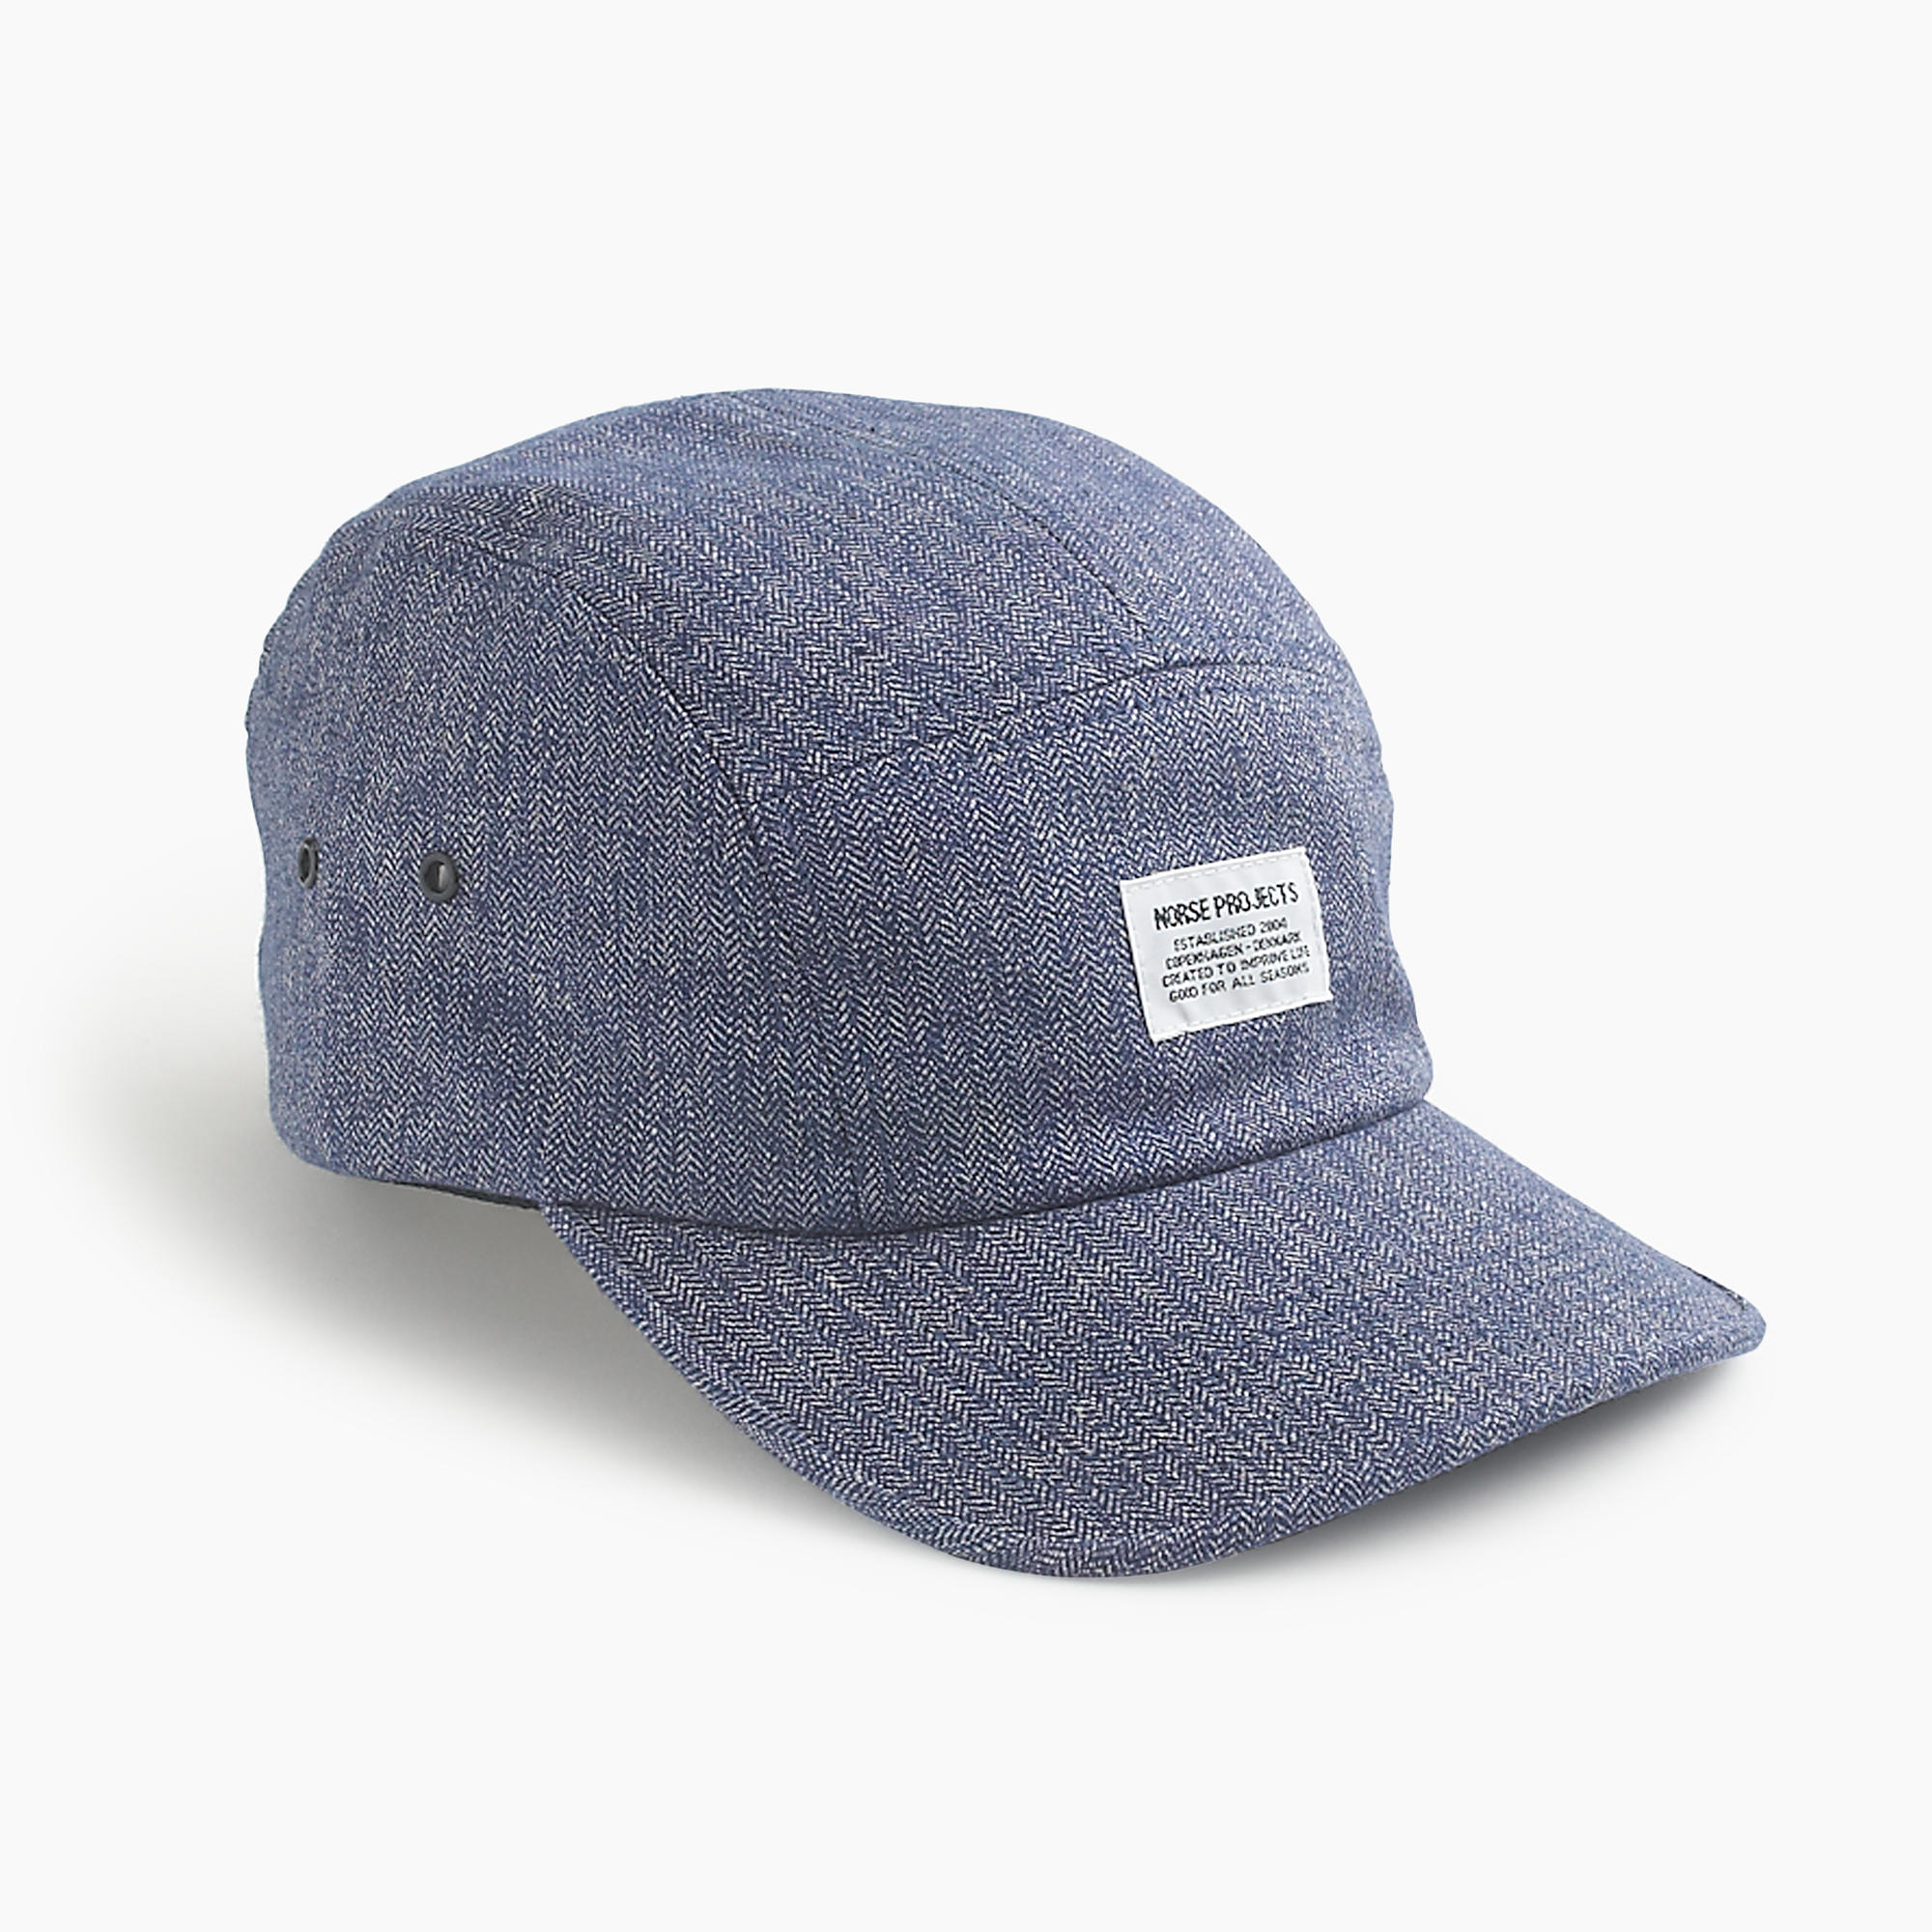 17c58b487b5 Lyst - J.Crew Norse Projects Five-panel Cap in Blue for Men